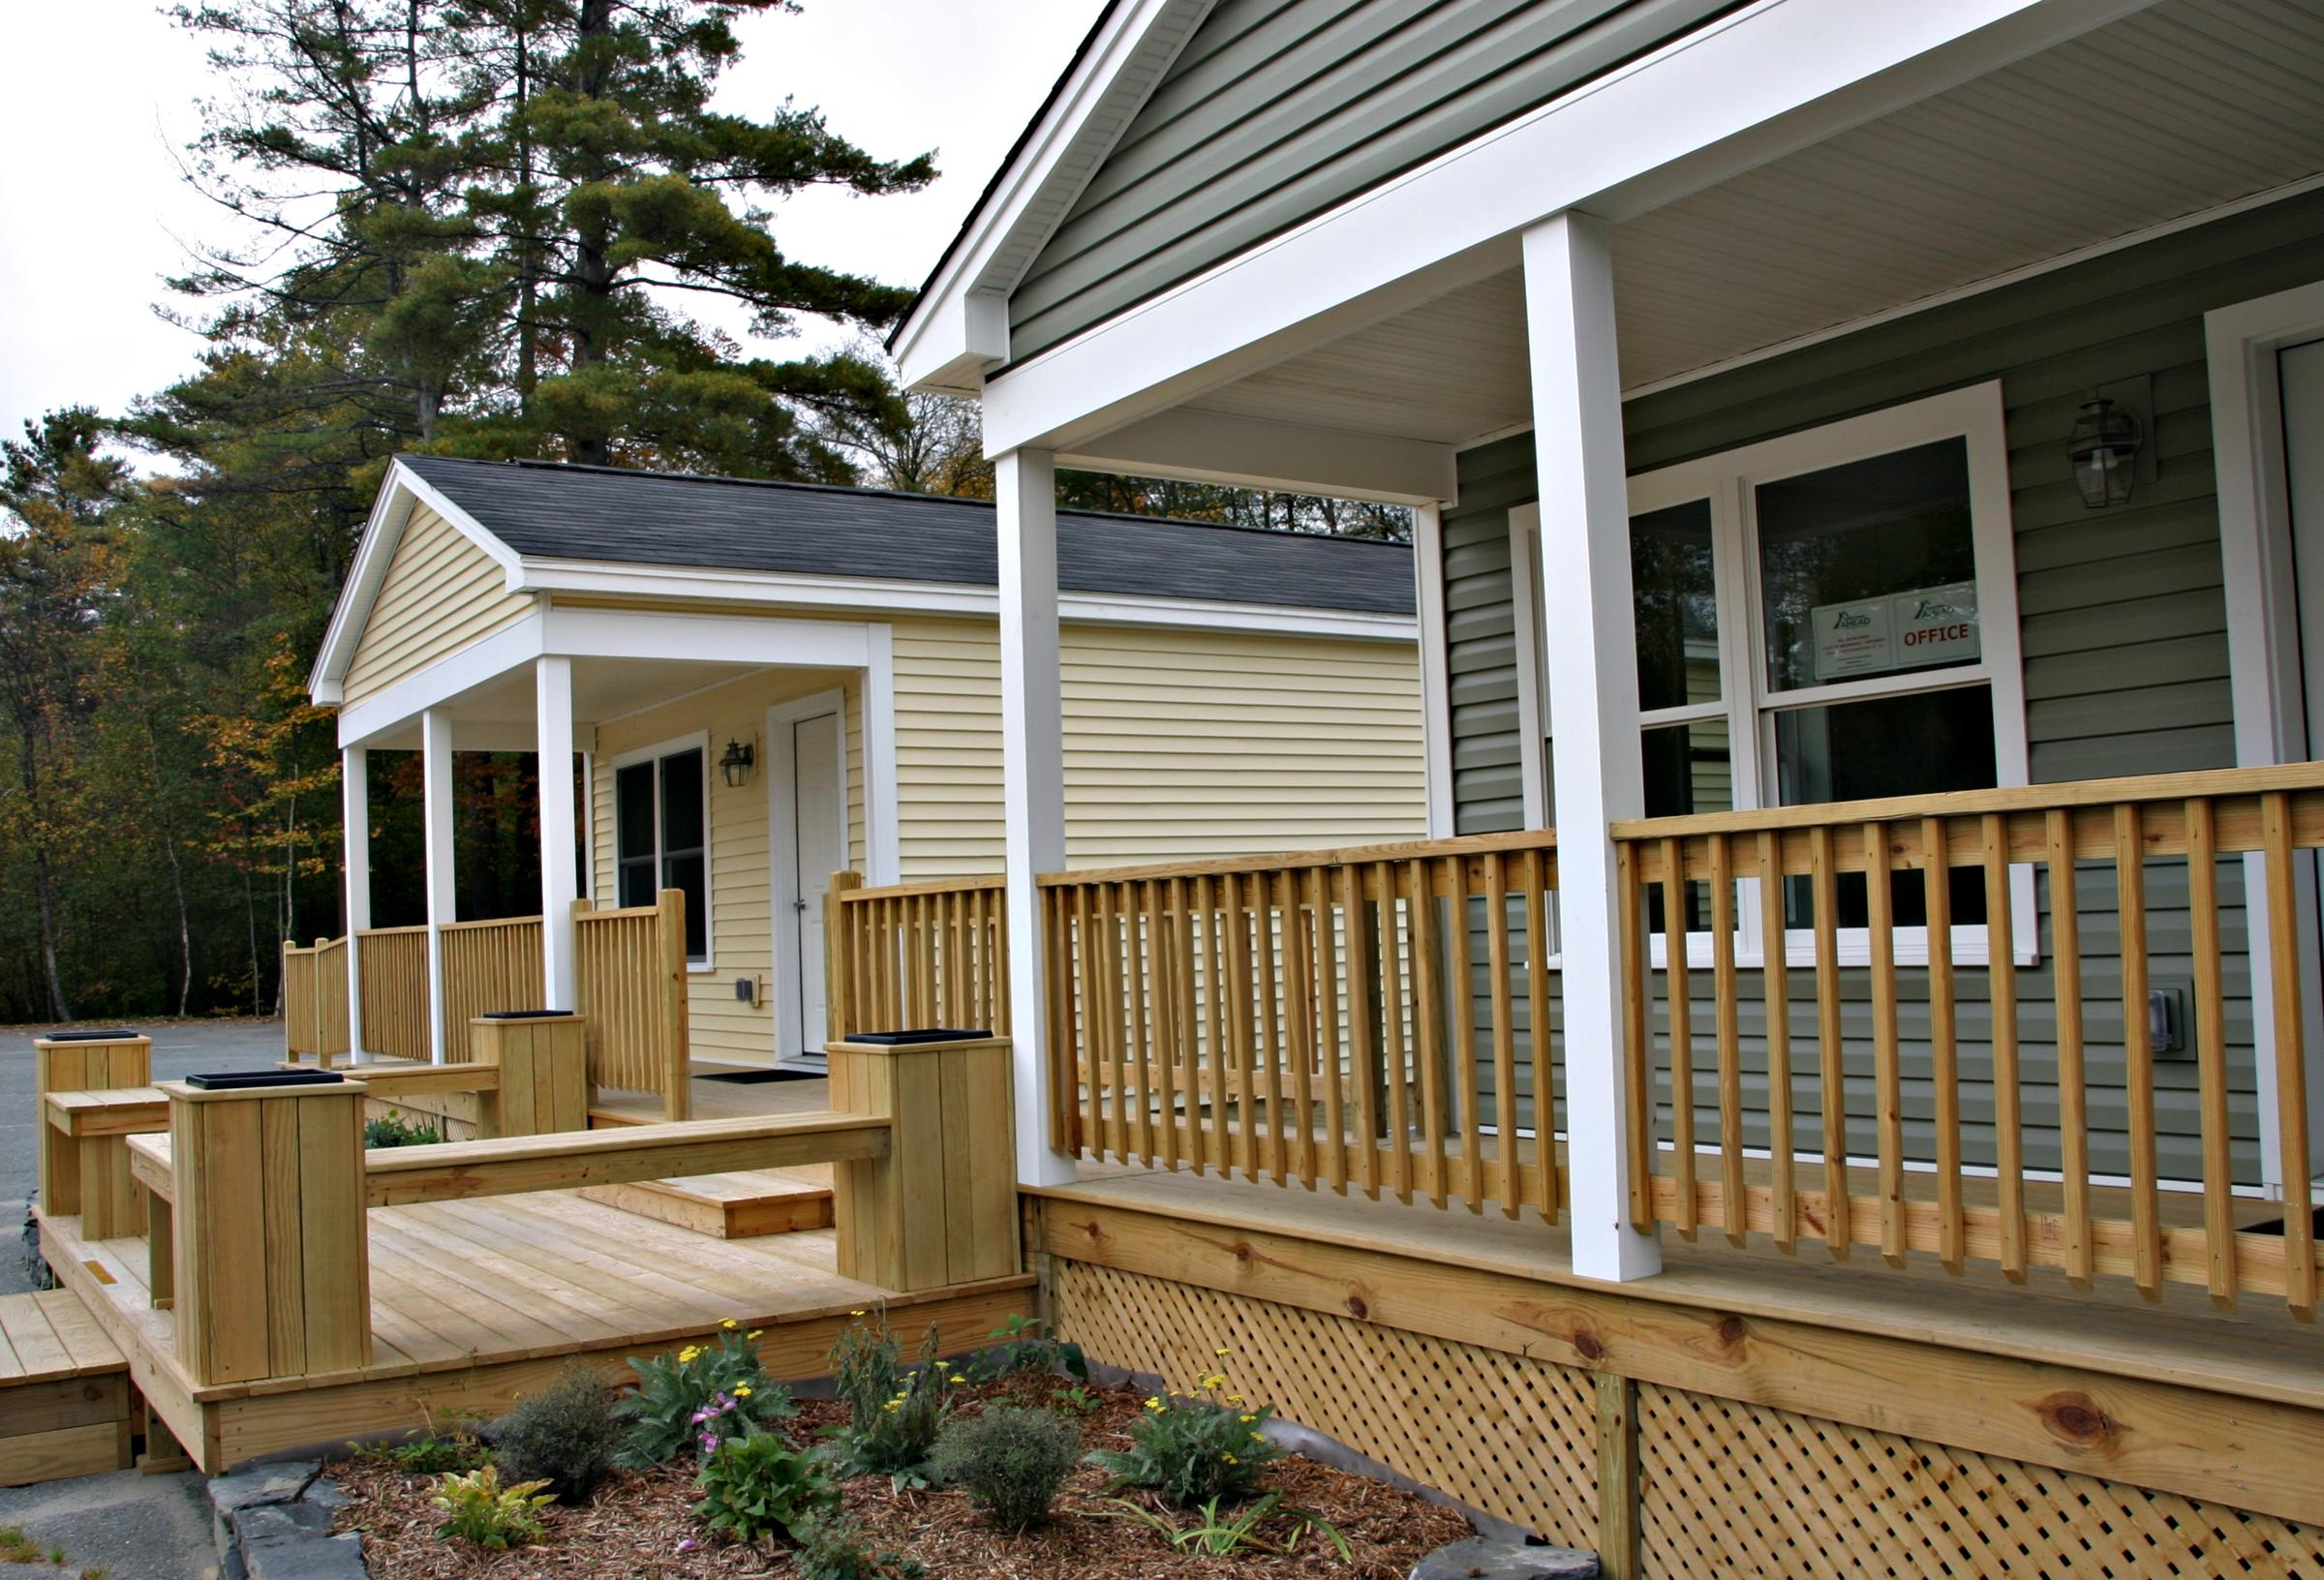 Better Homes Ahead is selling modular homes - shown here - as well as  manufactured homes.